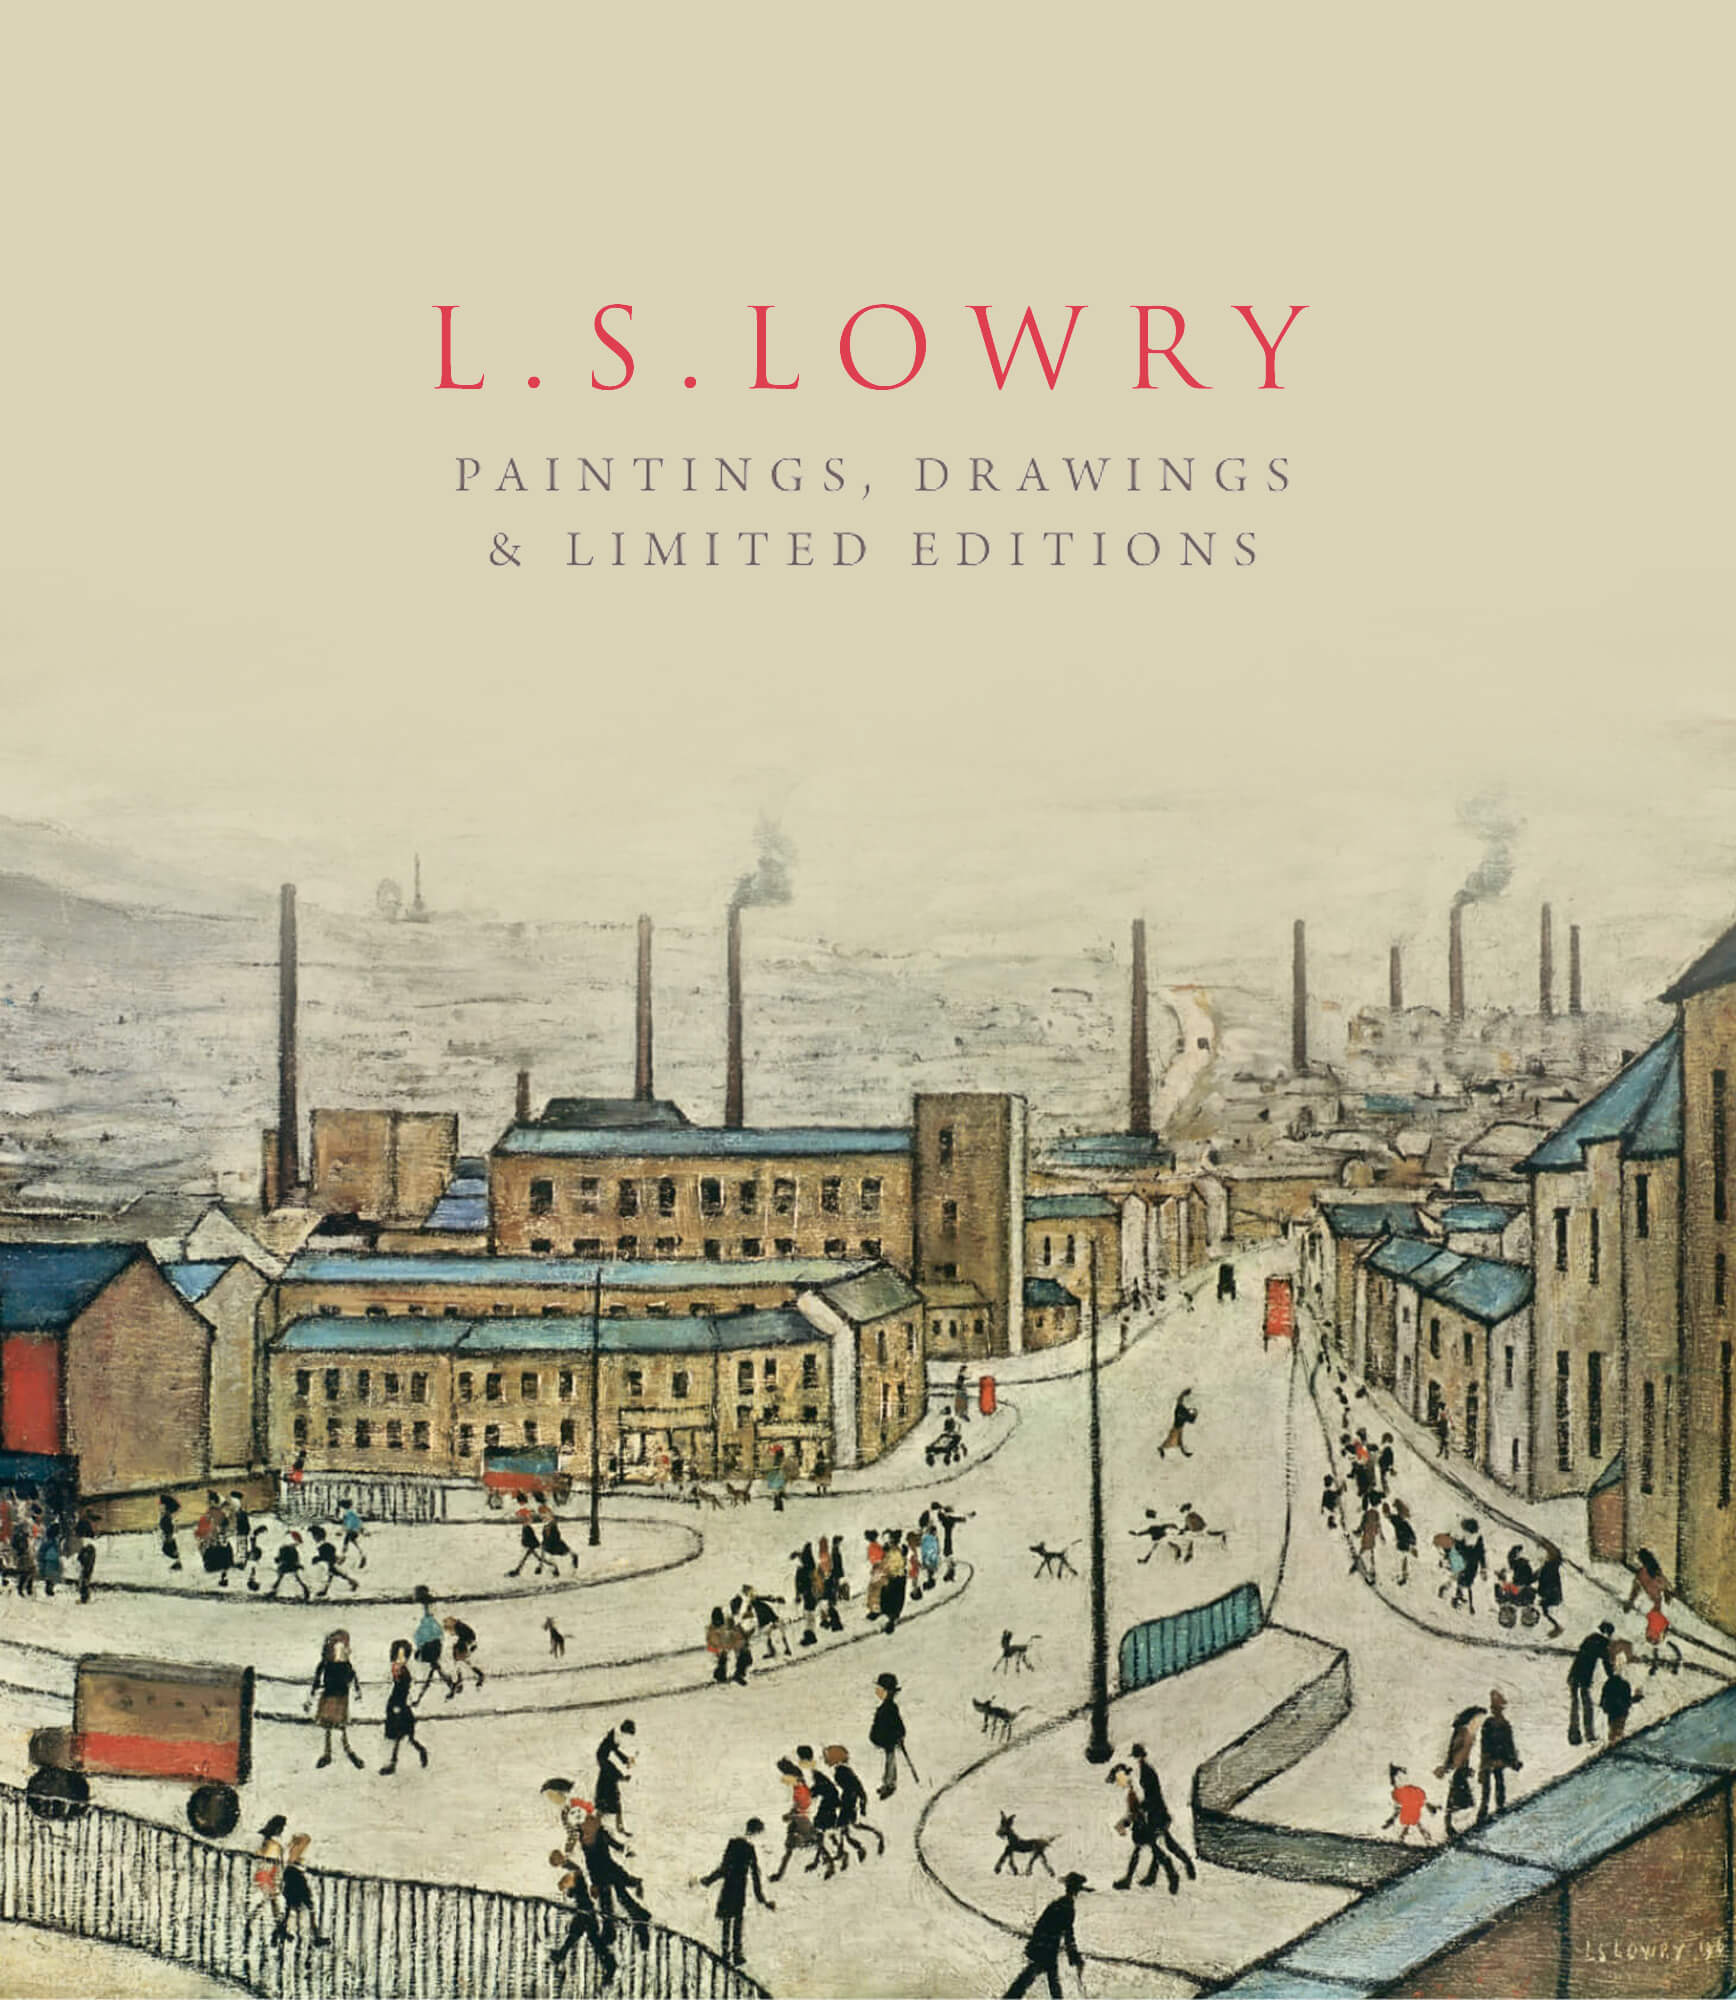 L.S.Lowry the new collection of highly sought-after paintings and rare signed limited editions image